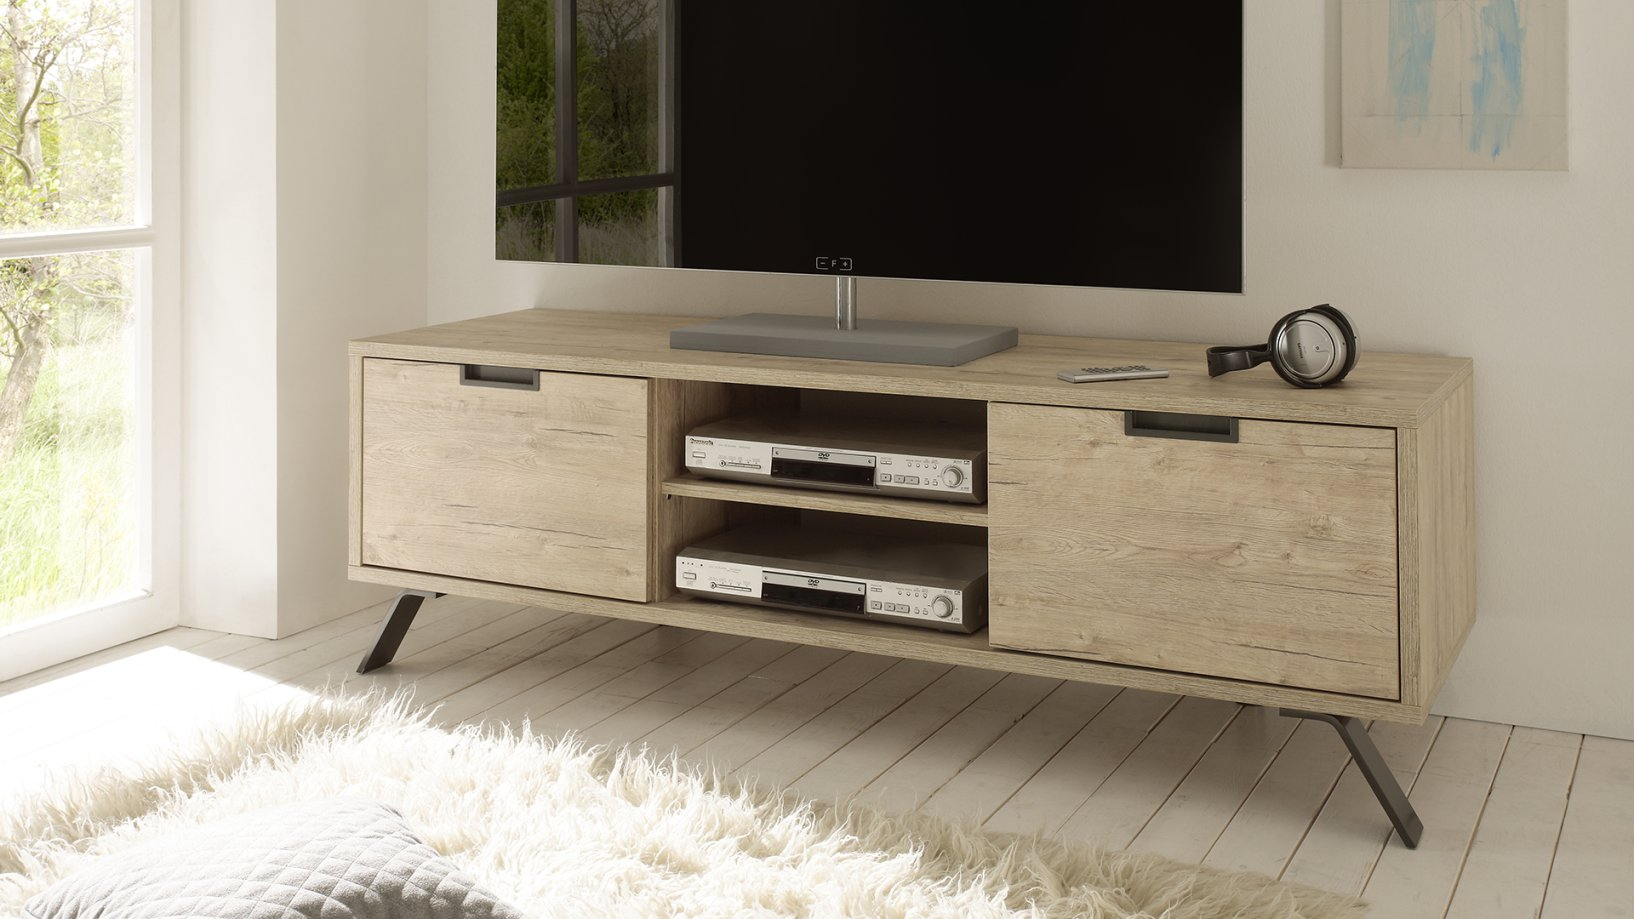 Meuble Tv Yoop - Meuble Tv Yoop Royal Sofa Id E De Canap Et Meuble Maison[mjhdah]https://image.but.fr/is/image/but/2099901332868_F?$produit_xl$&wid=1158&hei=1288&fit=fit,1